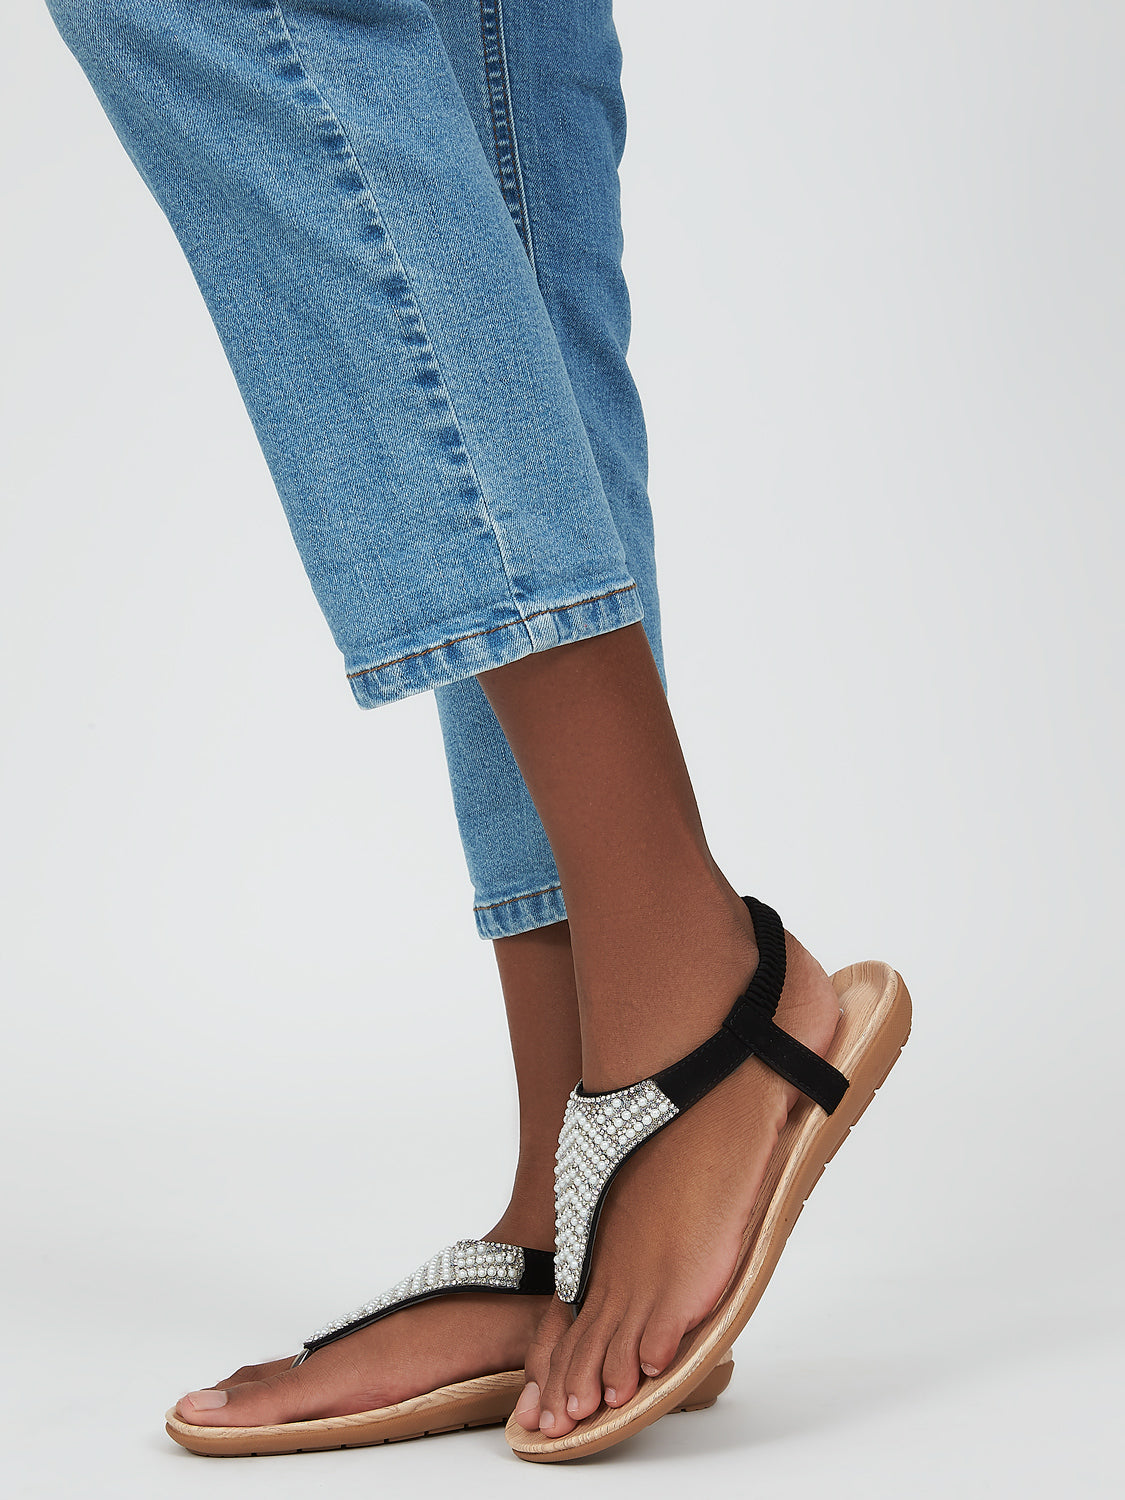 Studded T-Bar Wooden Sole Sandals